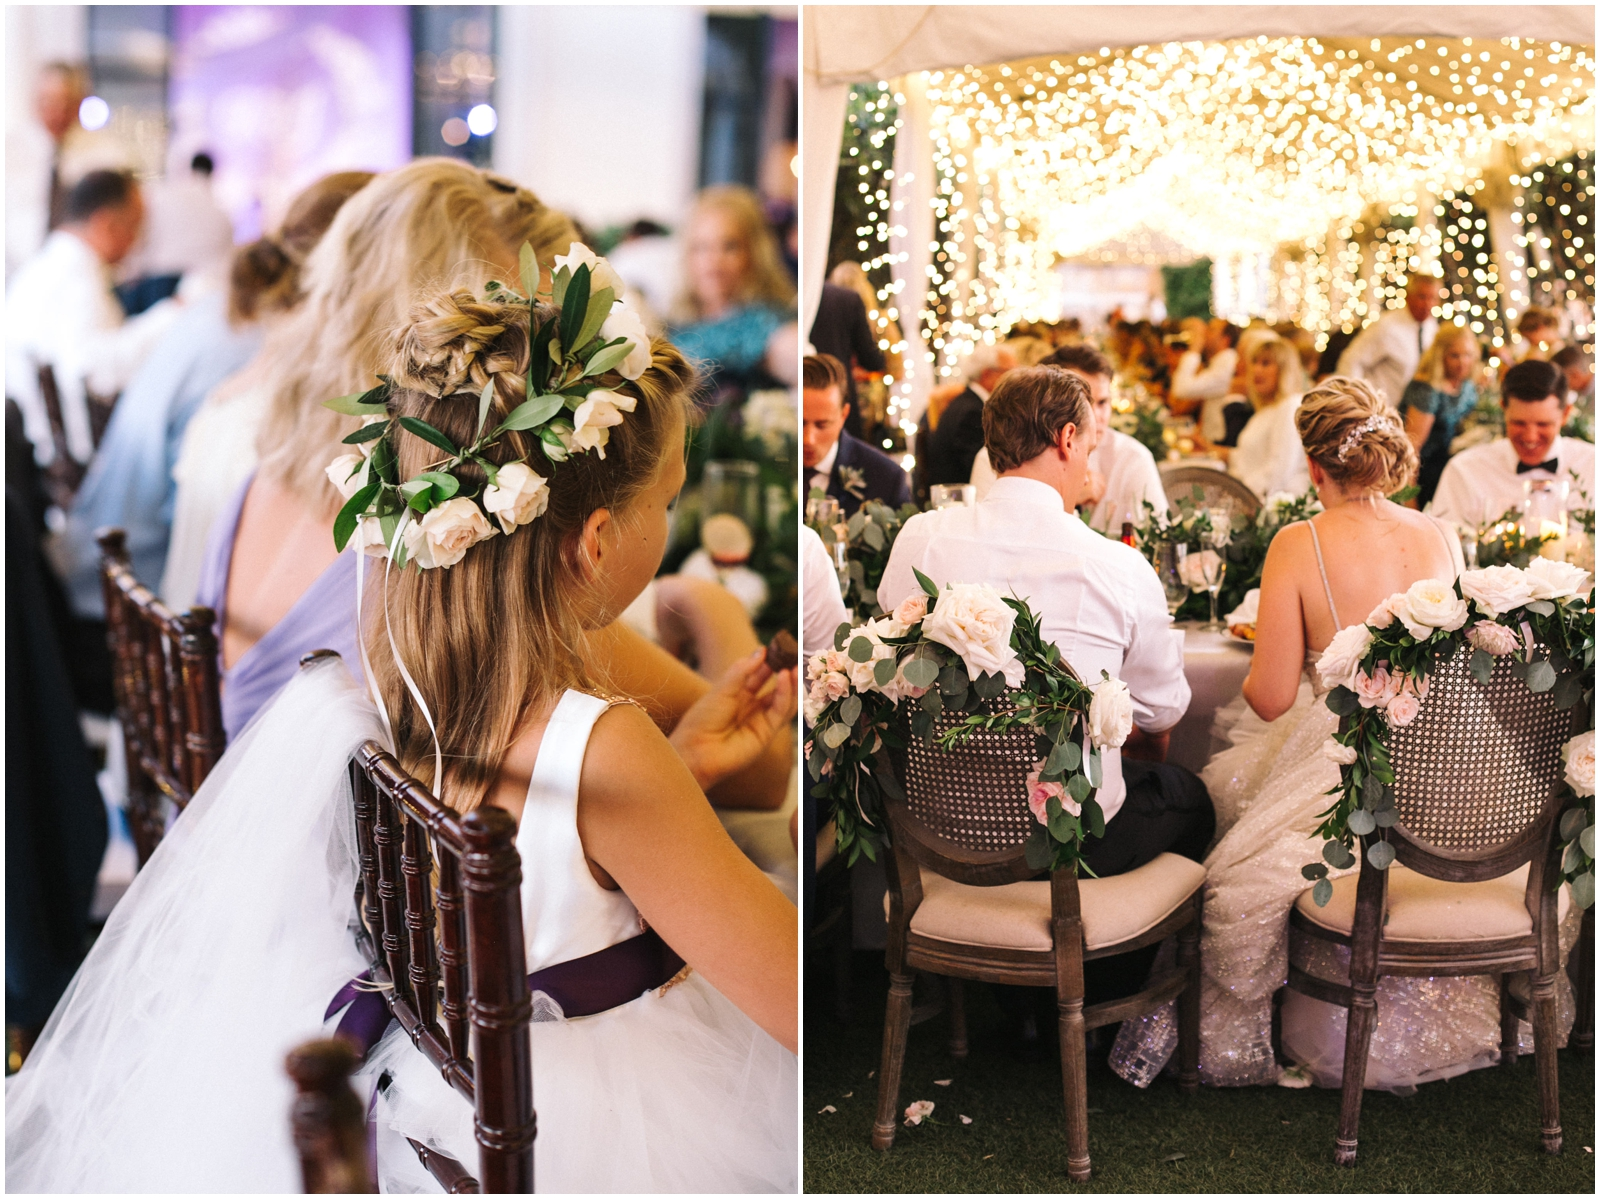 Flower crown and White floral decor